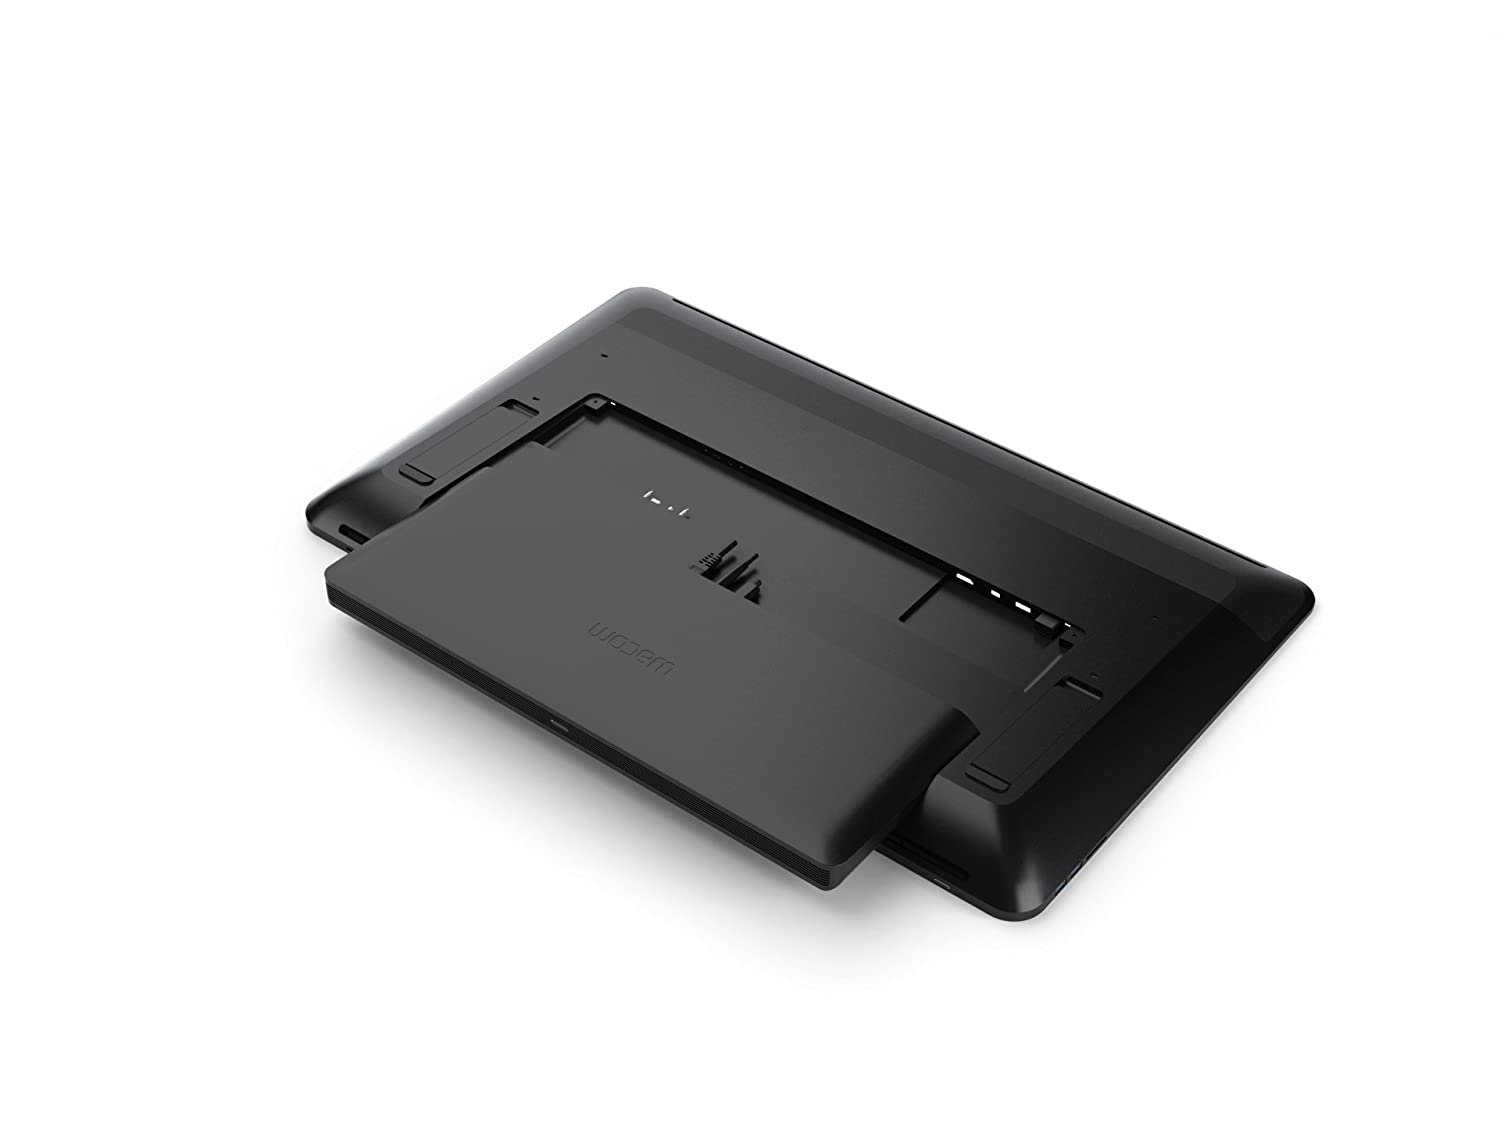 Wacom Cintiq Pro Engine 3,00 GHz Intel® Xeon® E3 v6 E3-1505MV6 Negro, Gris - Ordenador de sobremesa (3,00 GHz, Intel® Xeon® E3 v6, E3-1505MV6, 32 GB, 512 GB, Windows 10 Pro for Workstations)